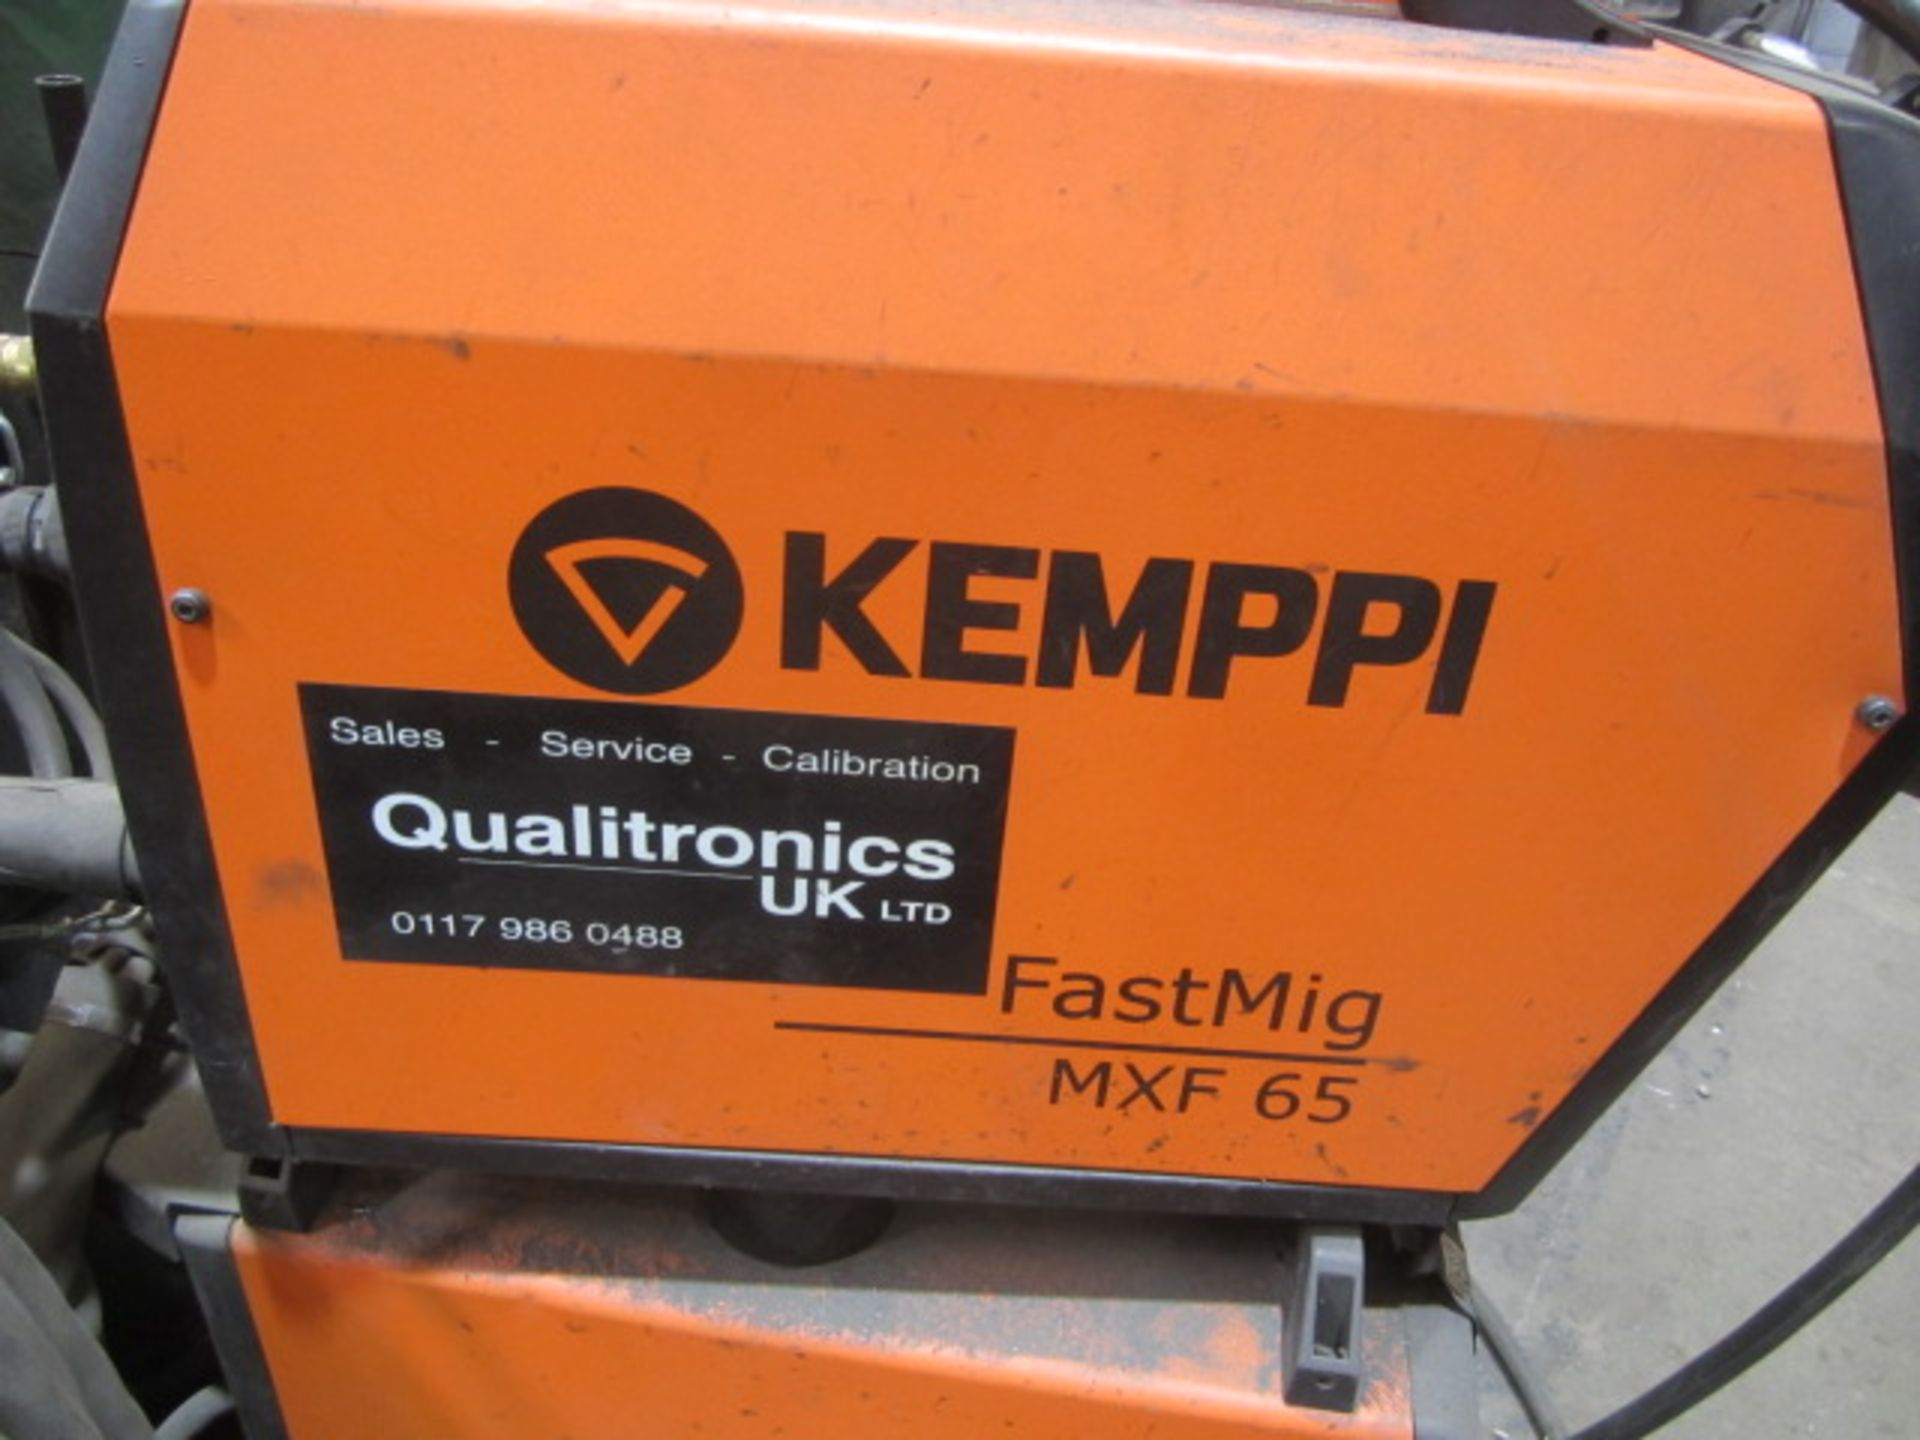 Kemppi Fast Mig M420 mig welder, serial no. 2674258, with Fast Mig MXF65 wire feeder, serial no. - Image 5 of 8